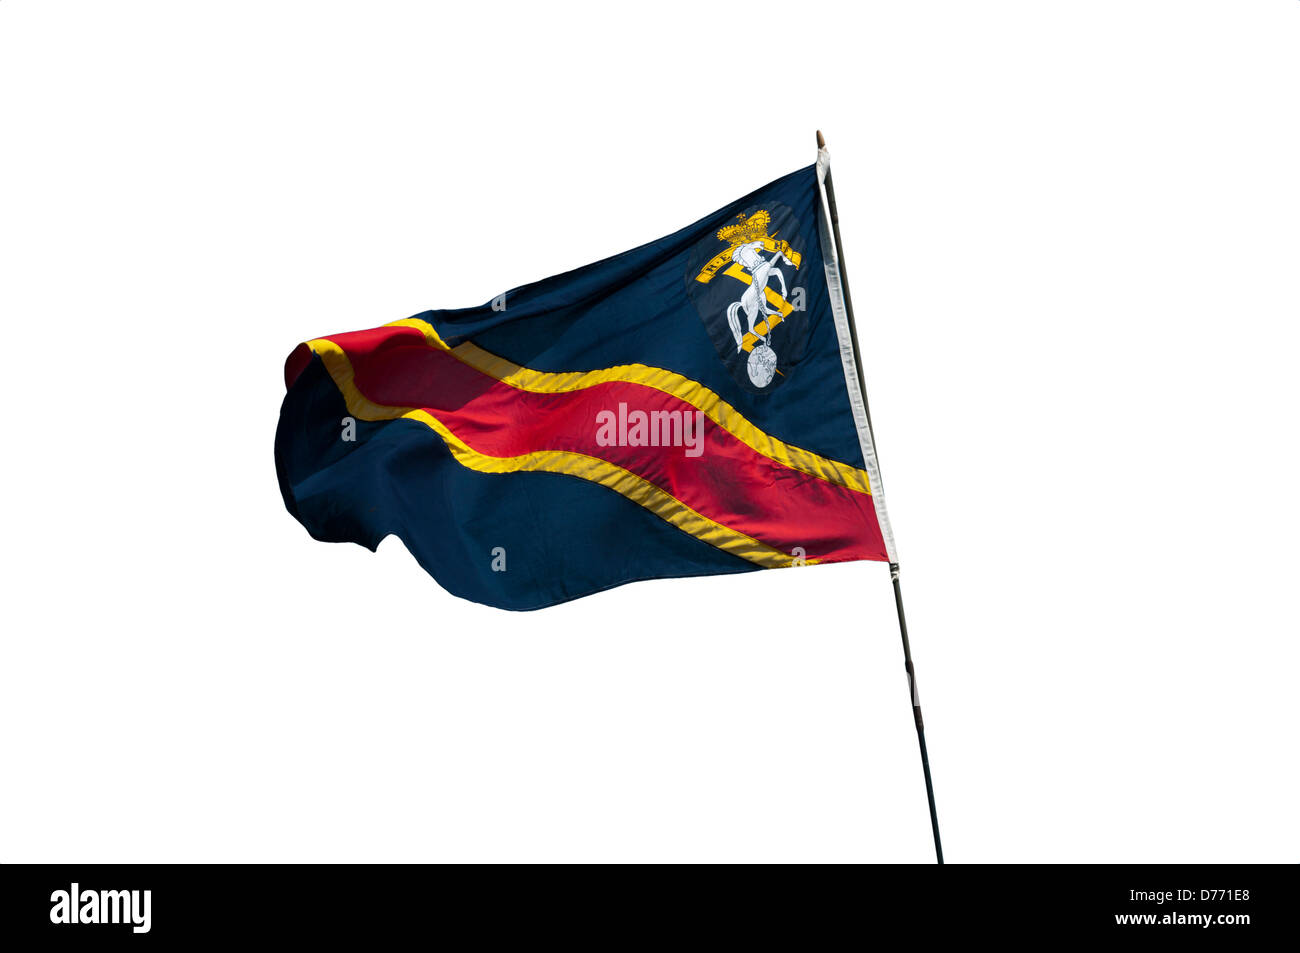 British Army REME Royal Electrical Mechanical Engineers Regimental Flag - Stock Image